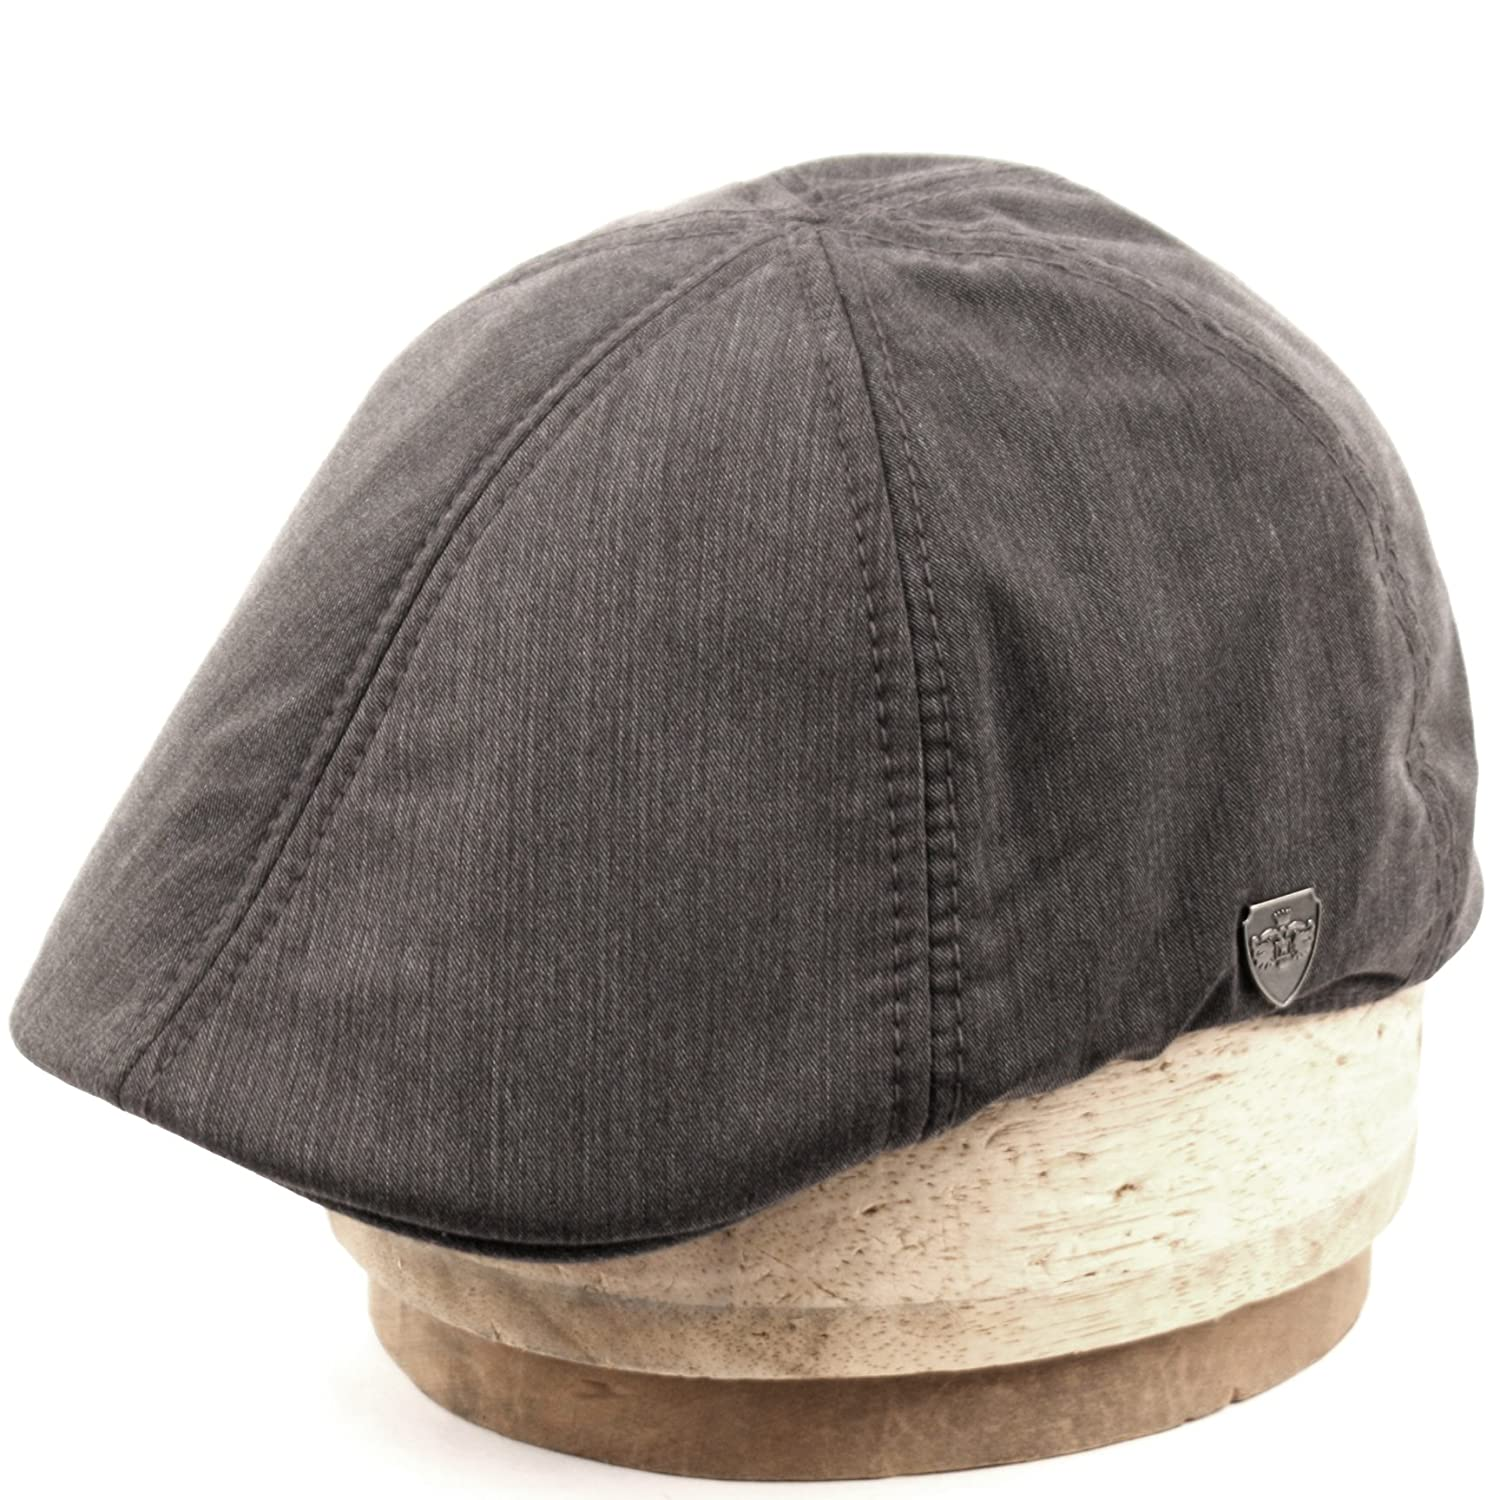 5f0cf8887d1 Epoch hats Men s 6 Panel Linen Duckbill Ivy Hat at Amazon Men s Clothing  store